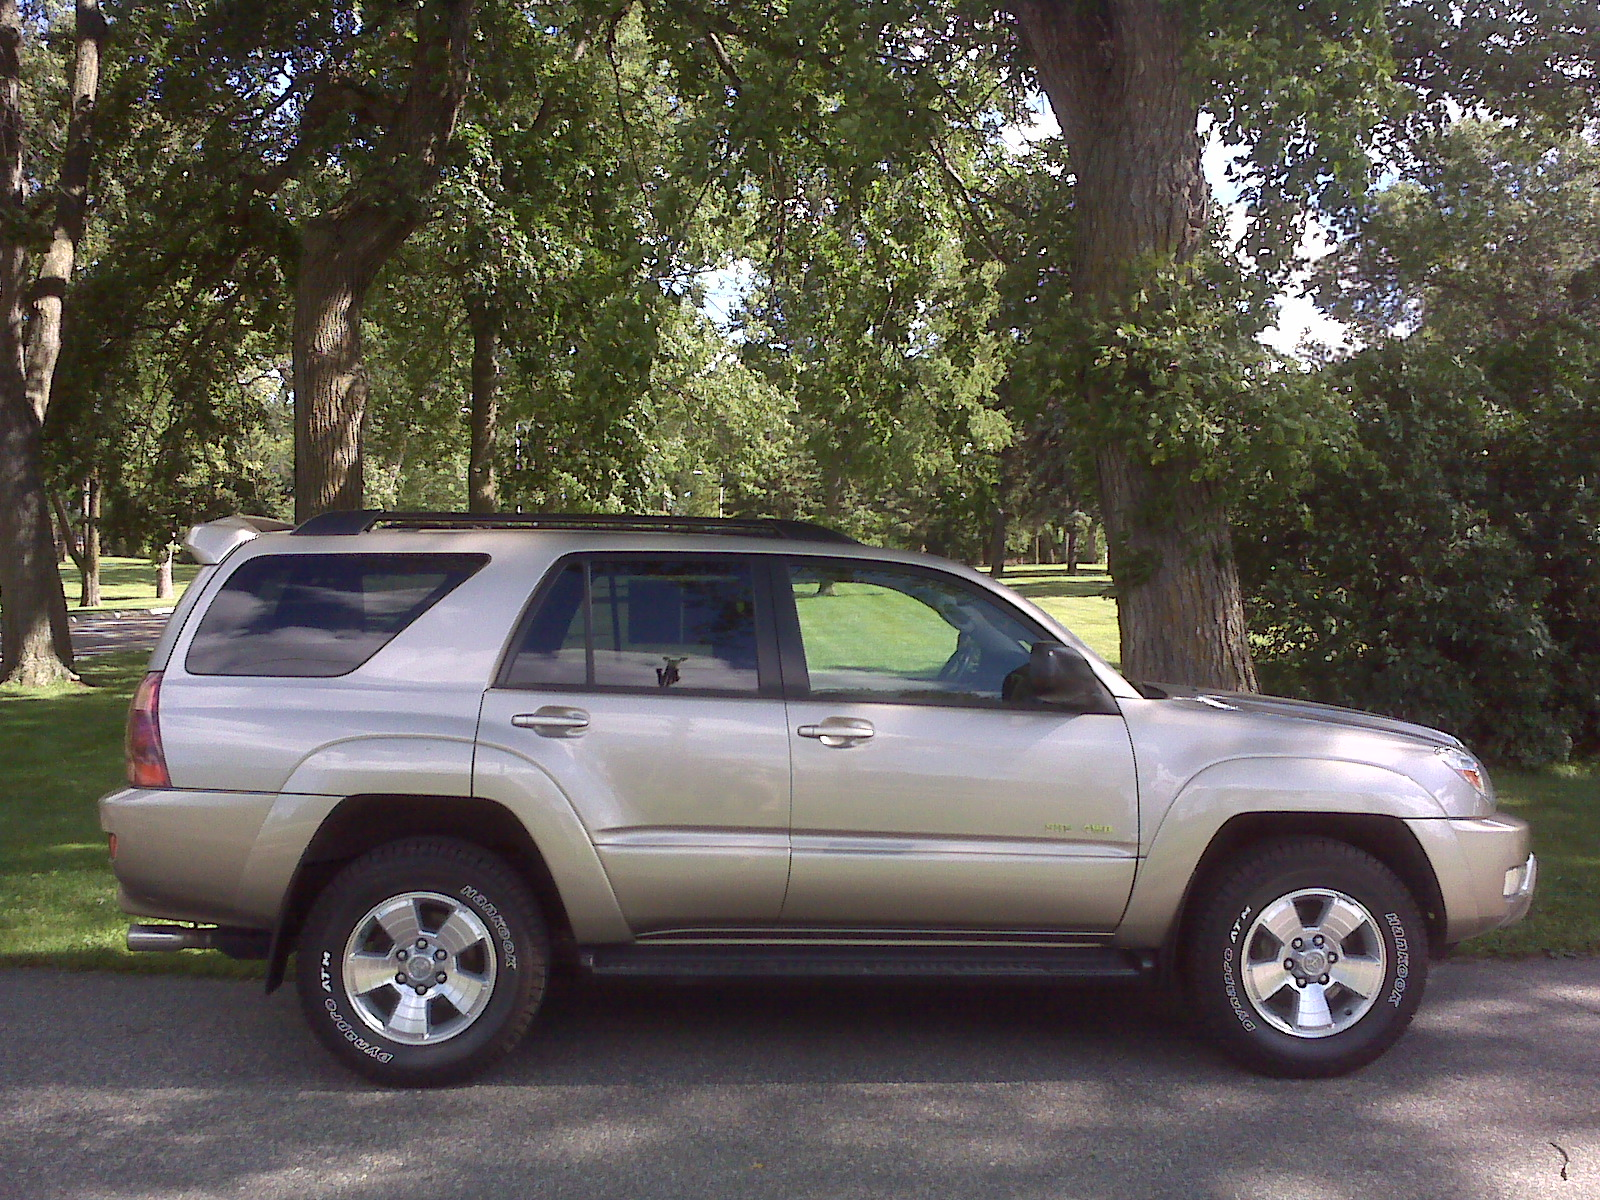 Photograph of a 2005 V6 Toyota 4Runner taken on 16 August 2010